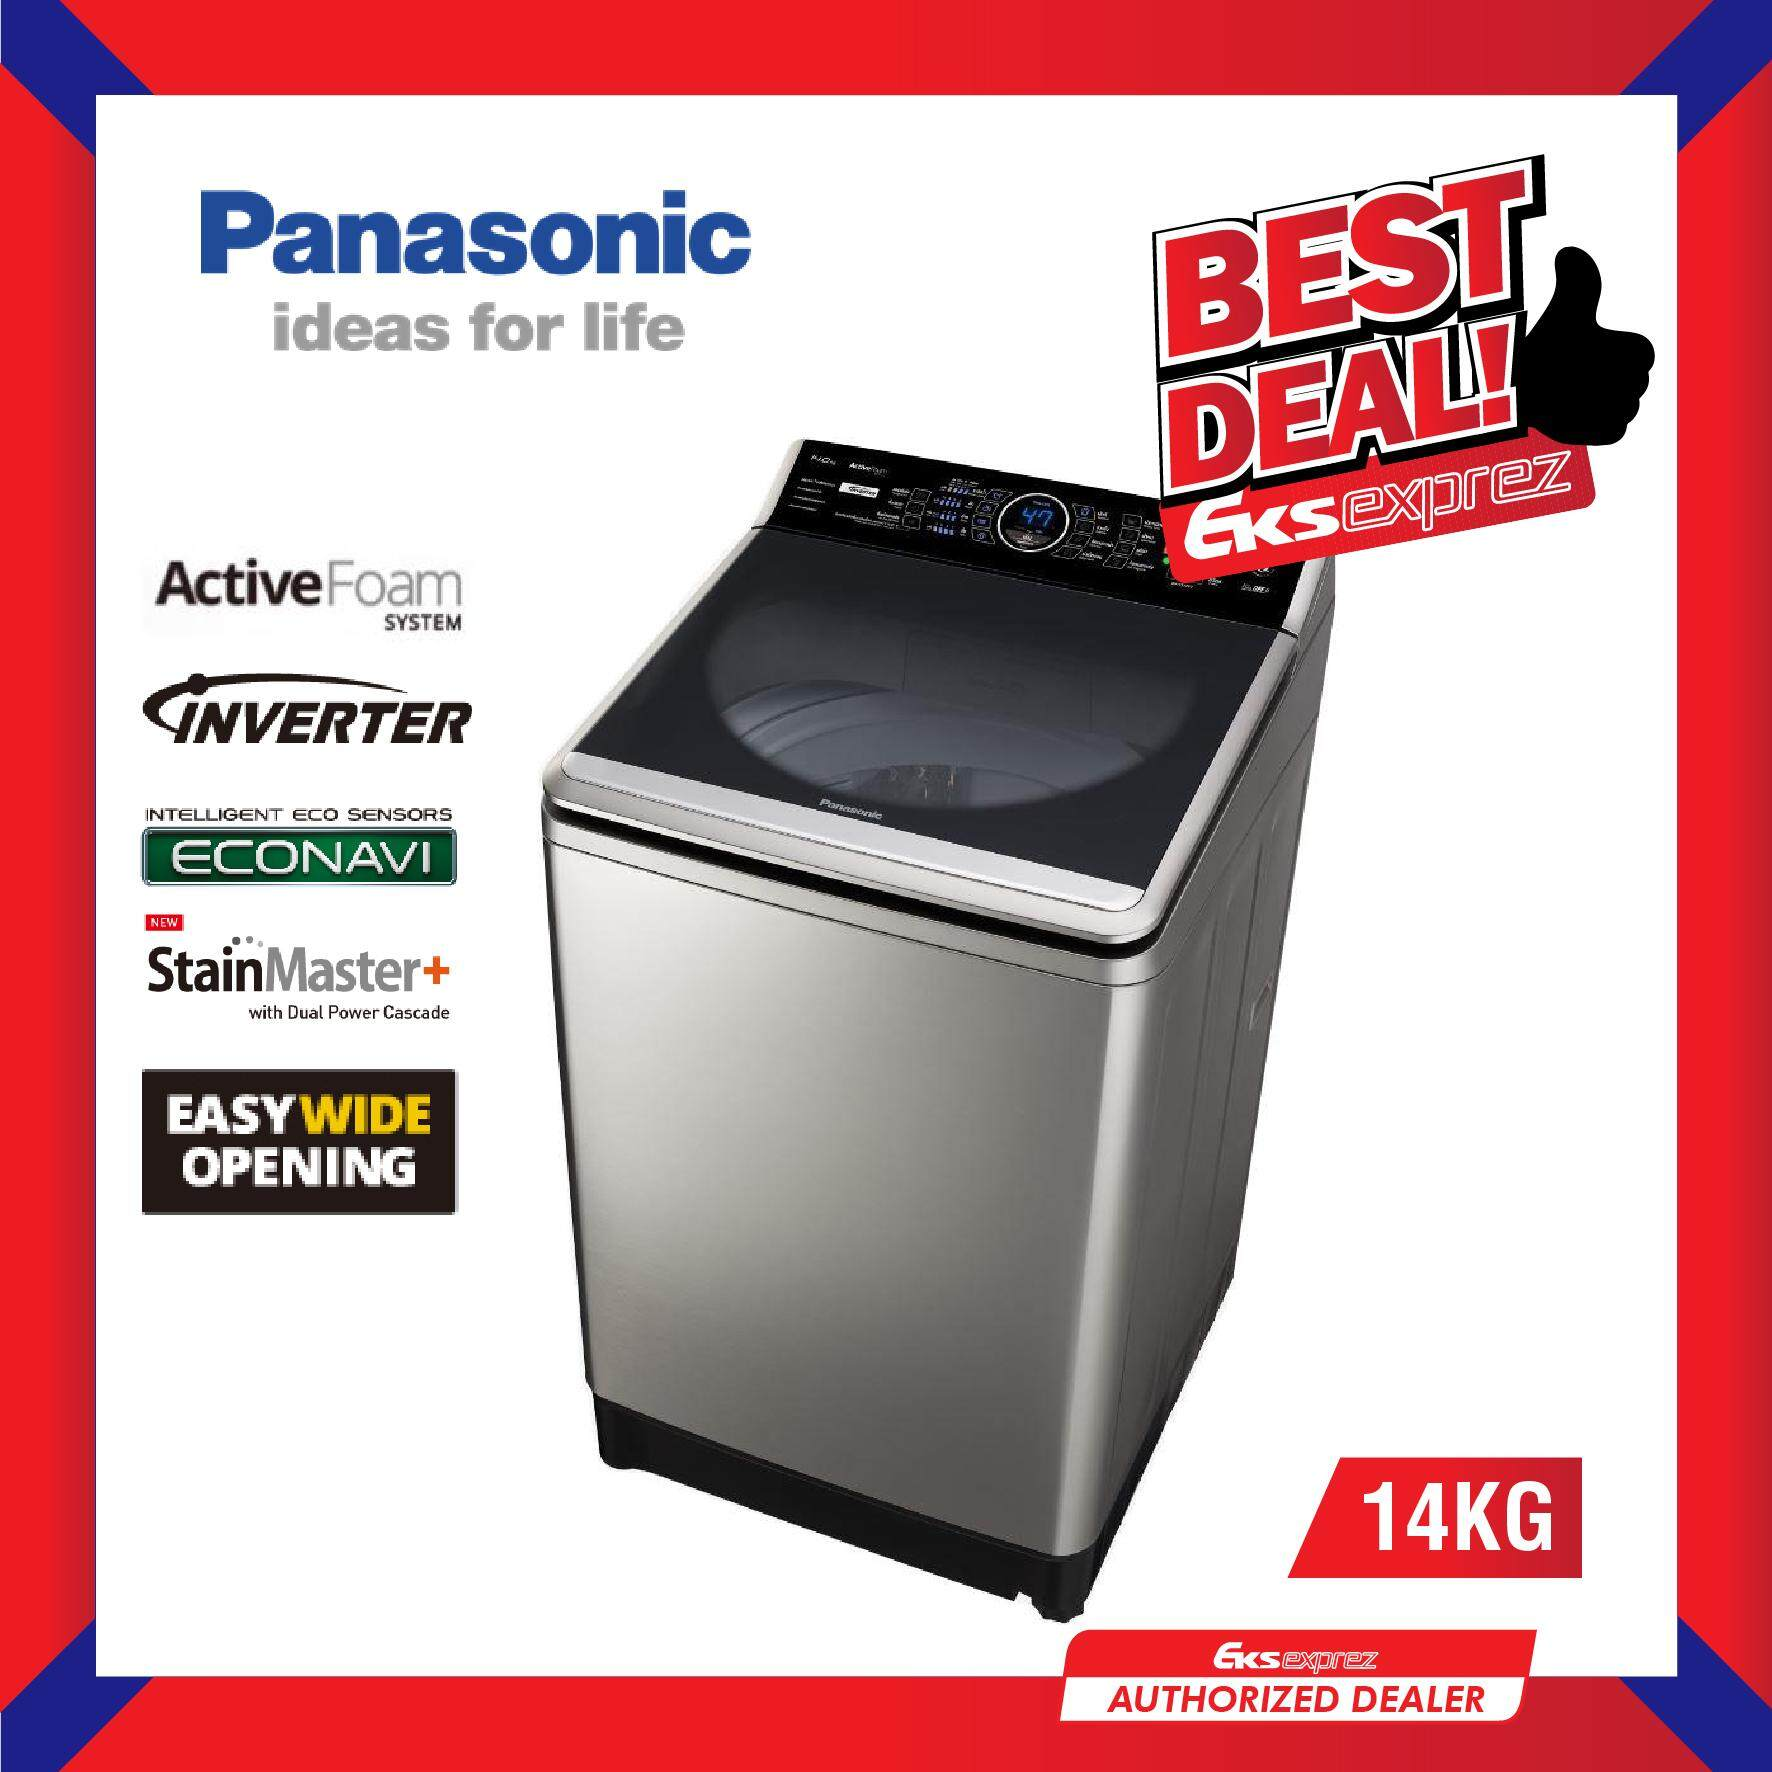 Panasonic NA-FS14V7SRT 14KG Inverter Top Load Washer / Washing Machine with StainMaster+ & ActiveFoam